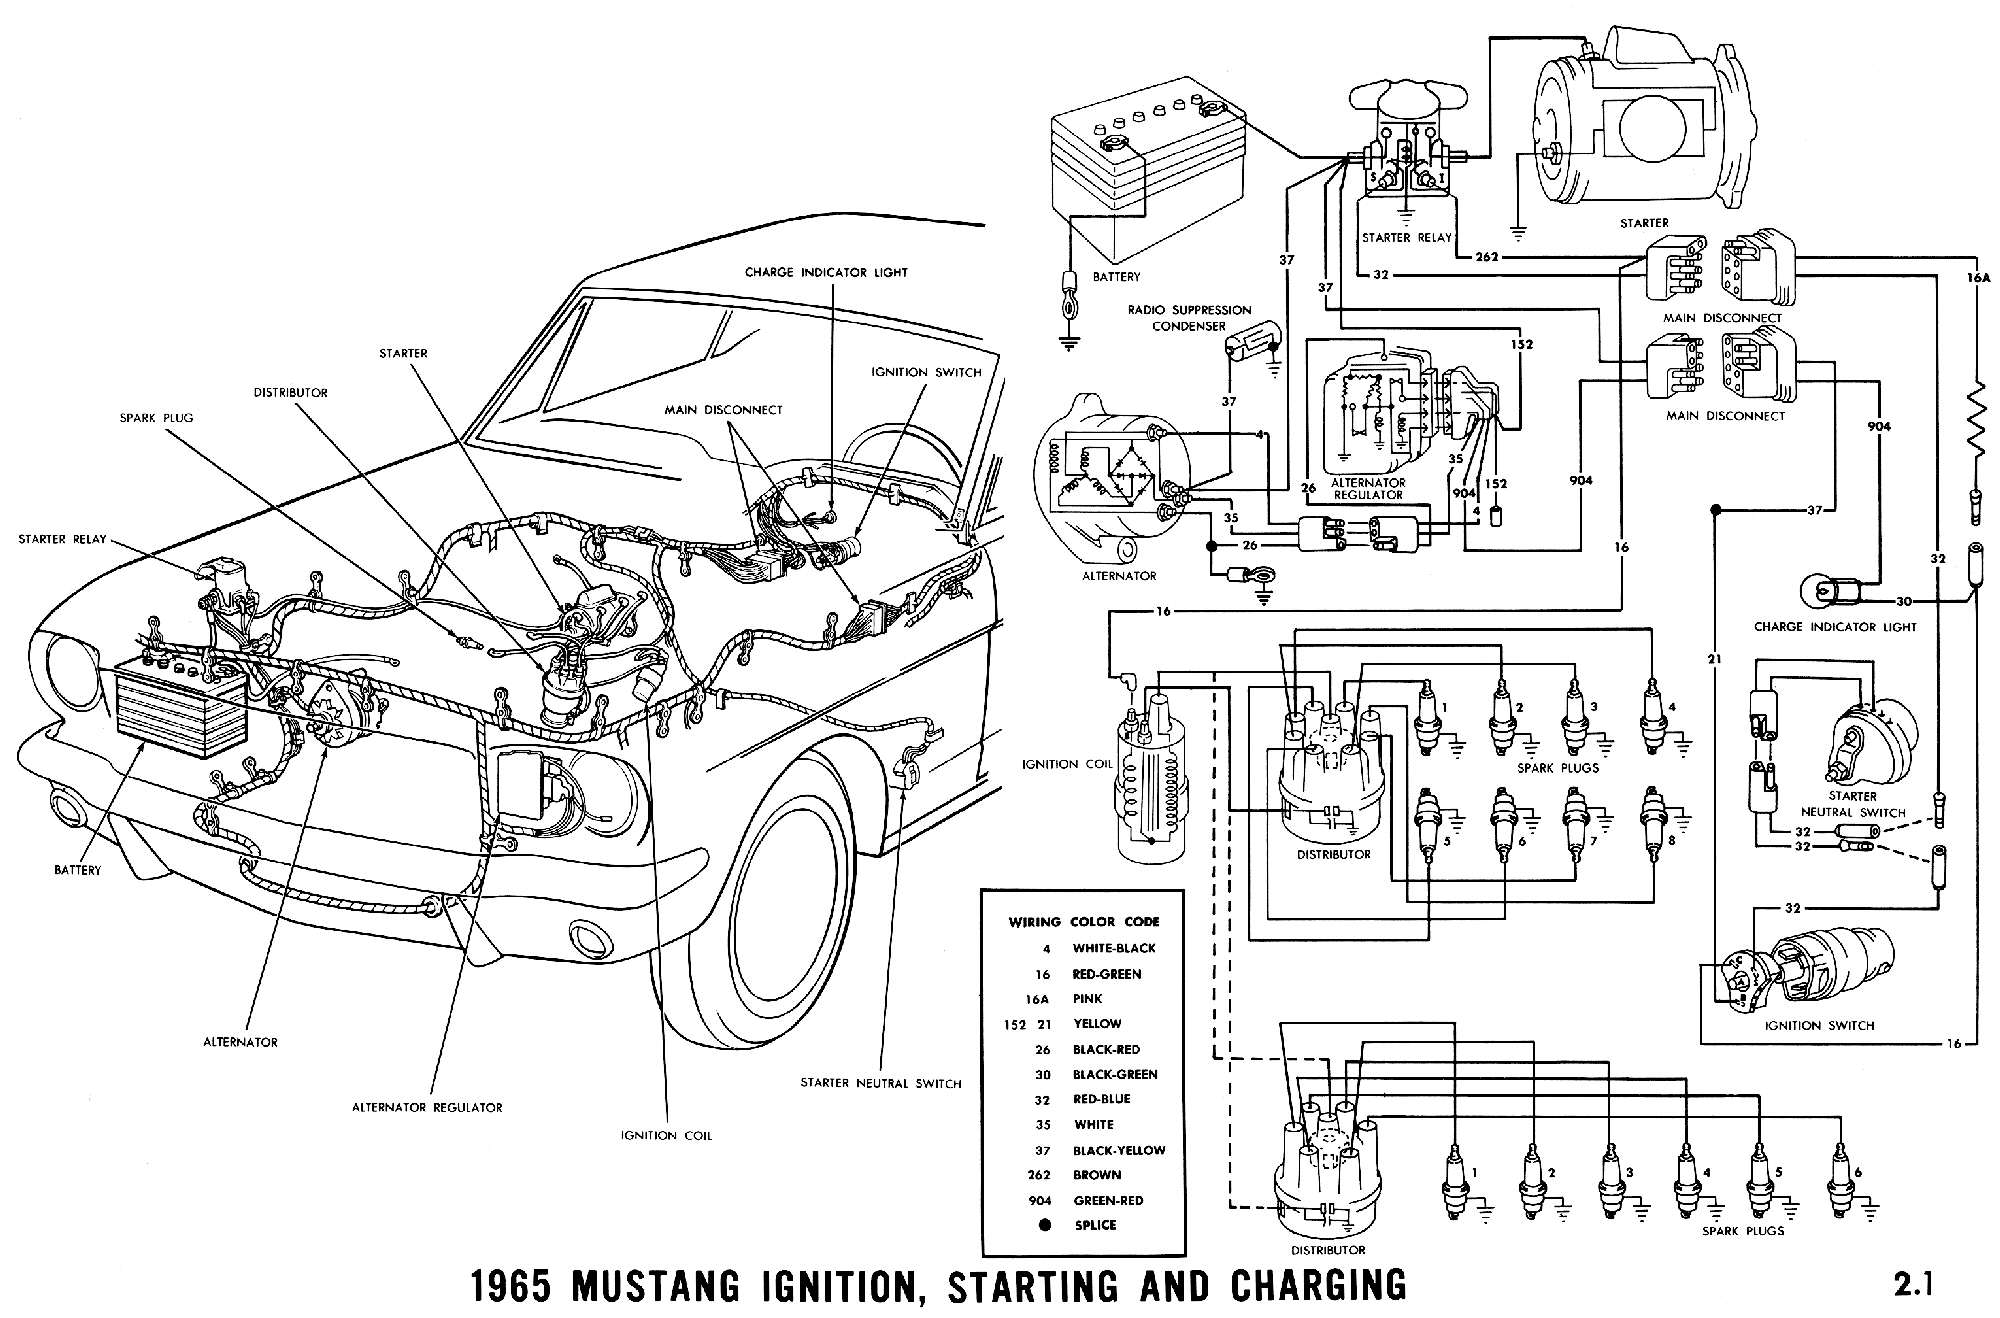 1965c 1965 mustang wiring diagrams average joe restoration 66 mustang alternator wiring diagram at couponss.co